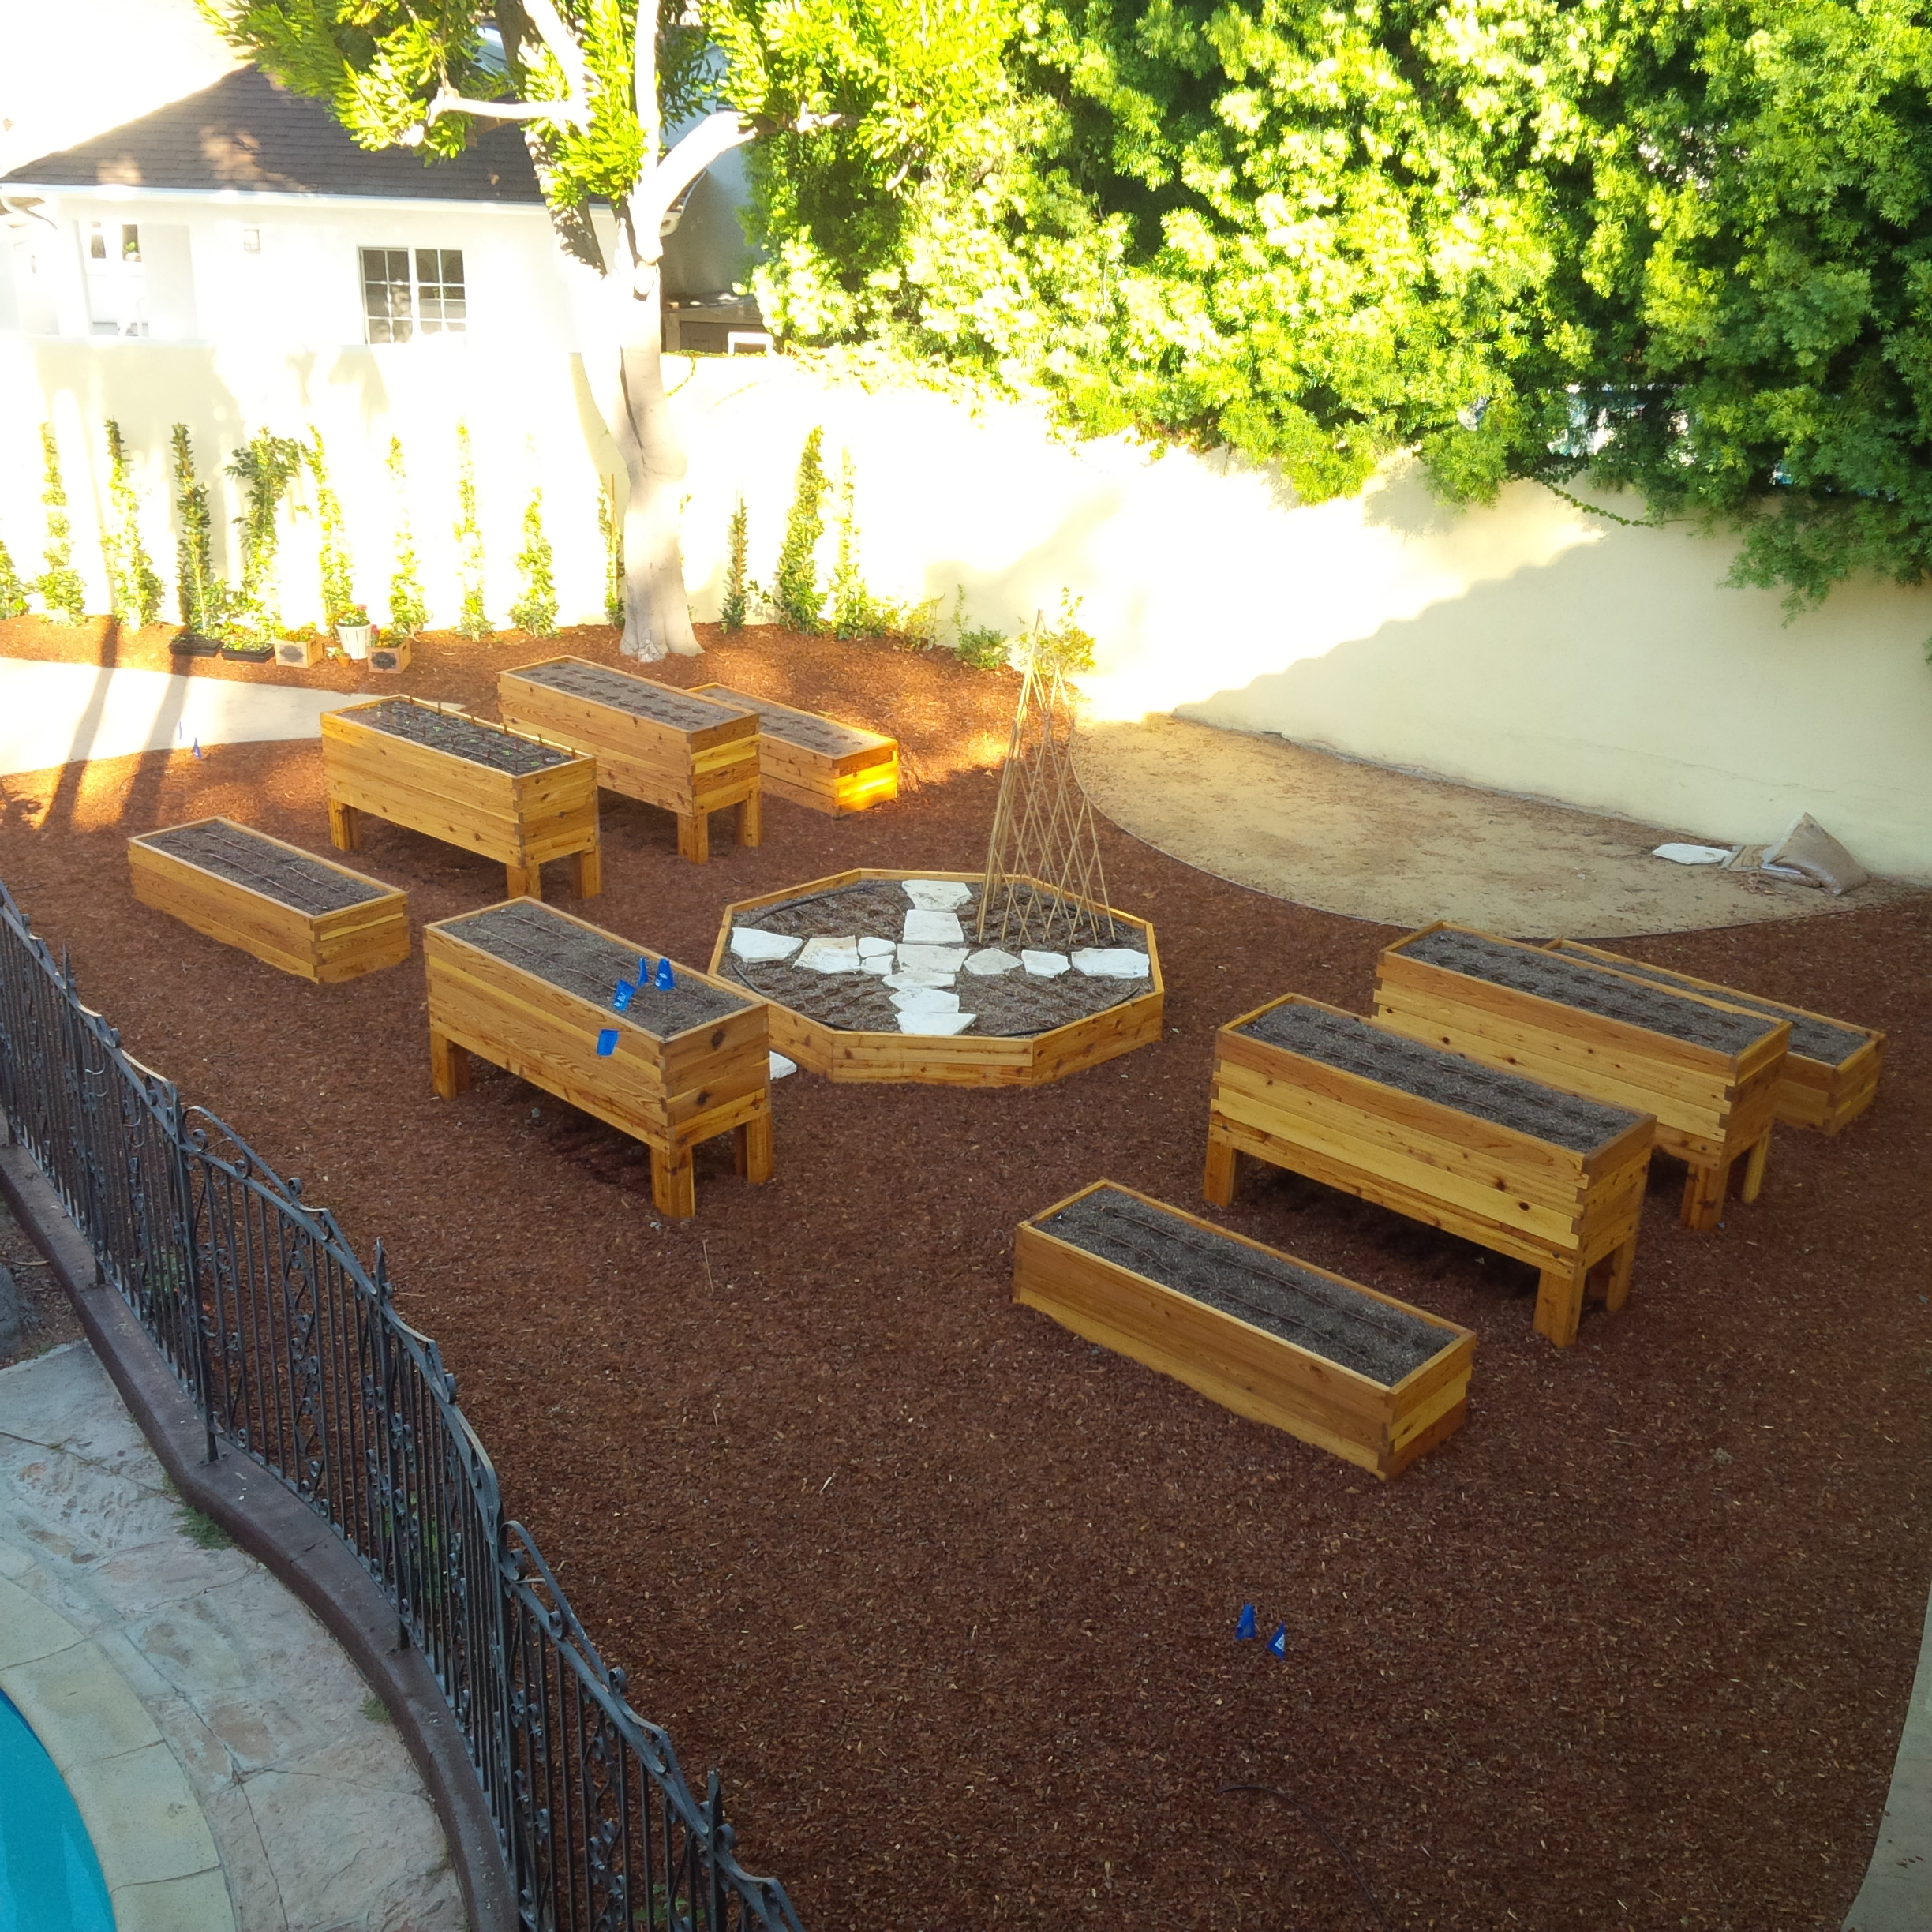 The garden after installation, before seating arrived.